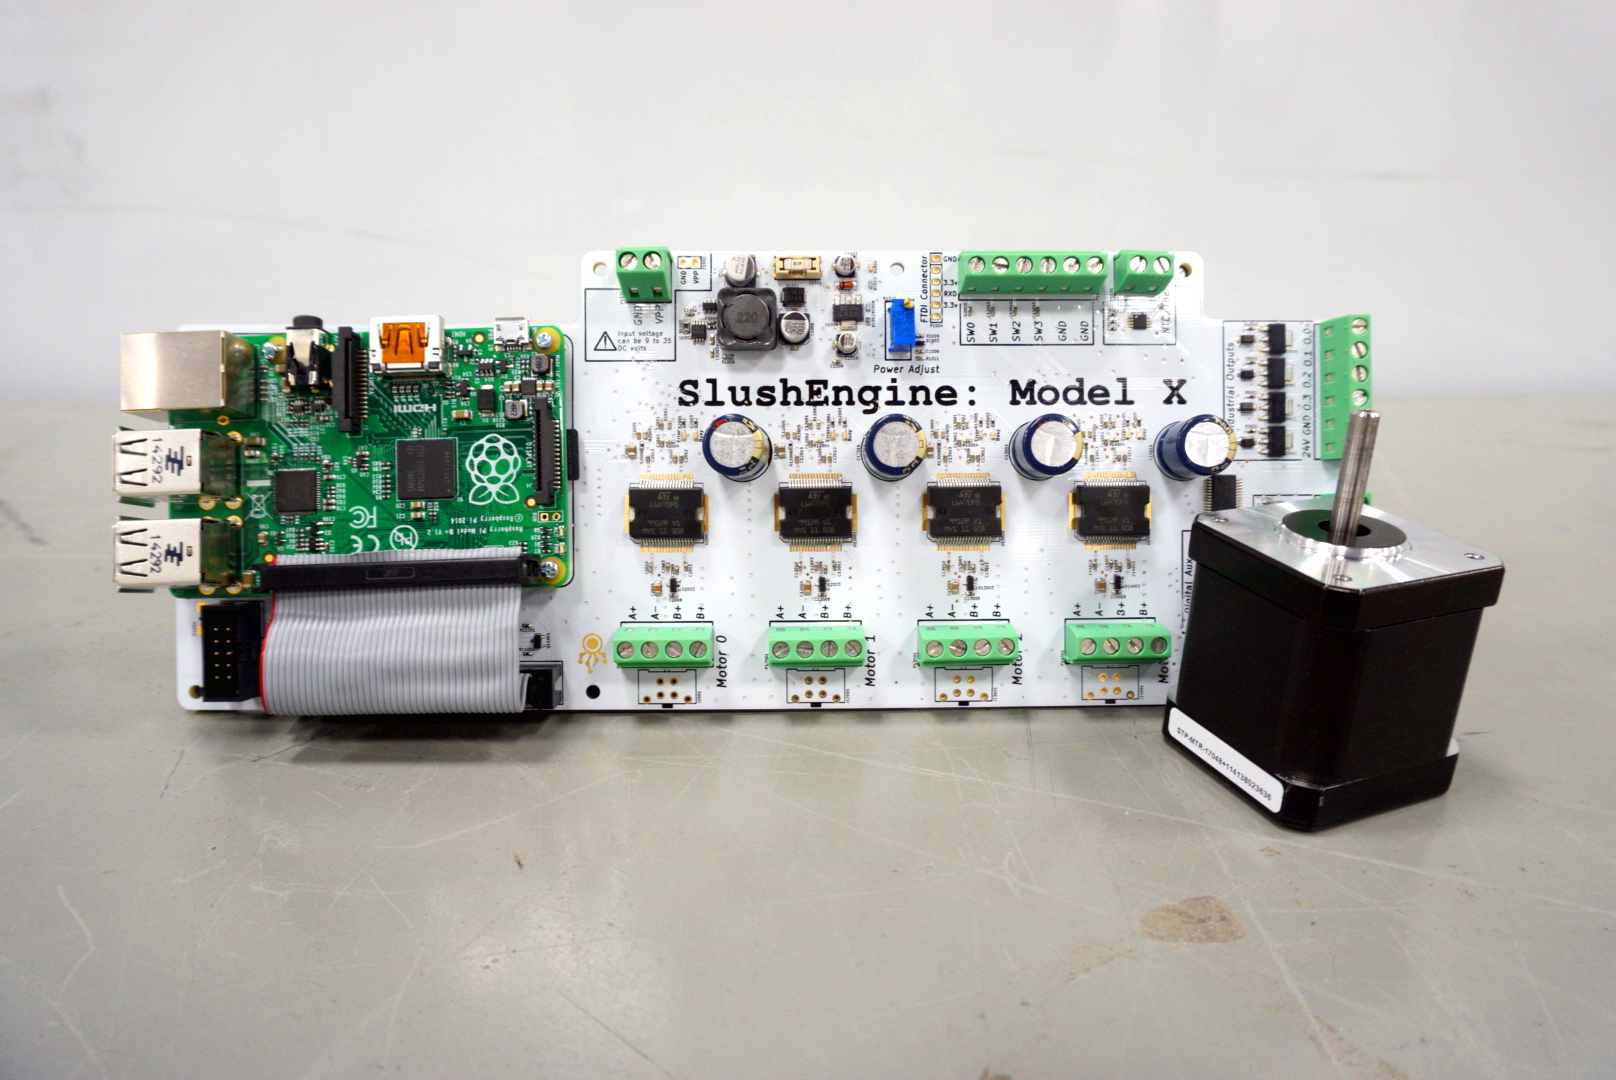 slushengine stepper motor controller for raspberry pi